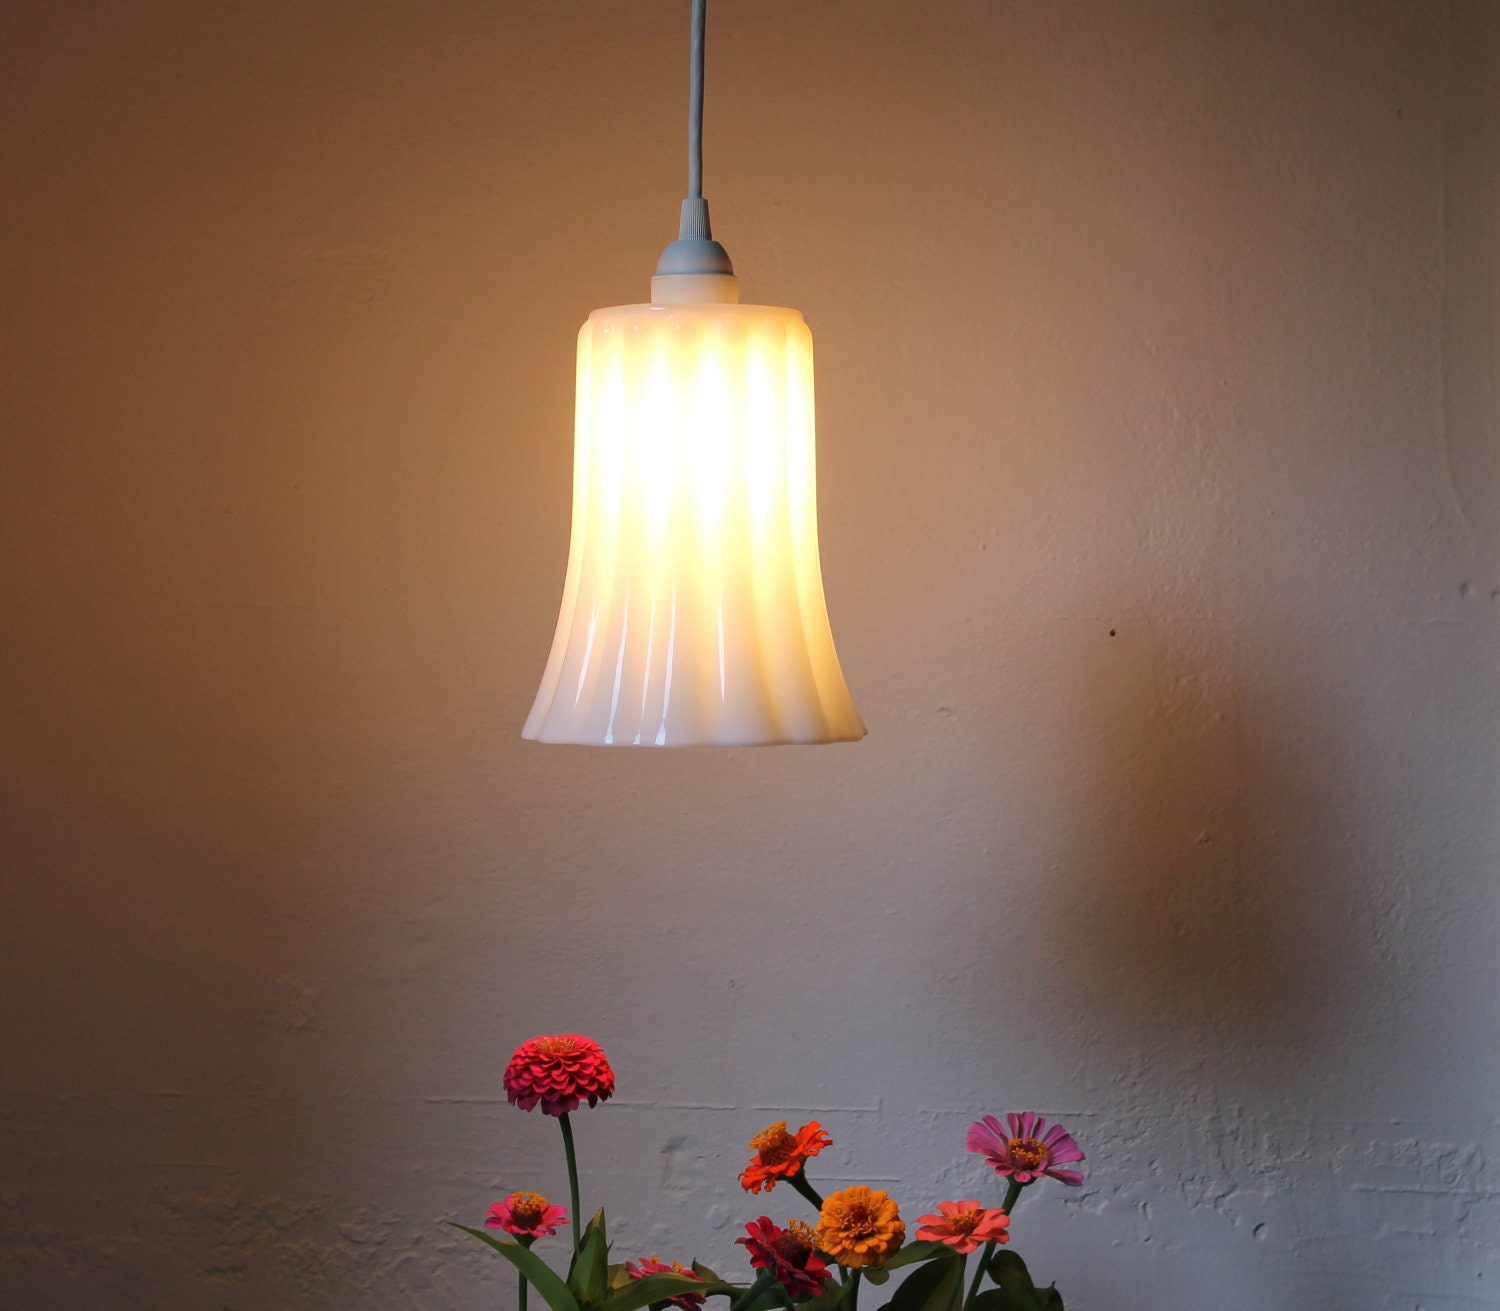 Milk Glass Pendant Lamp Hanging Pendant Lighting Fixture